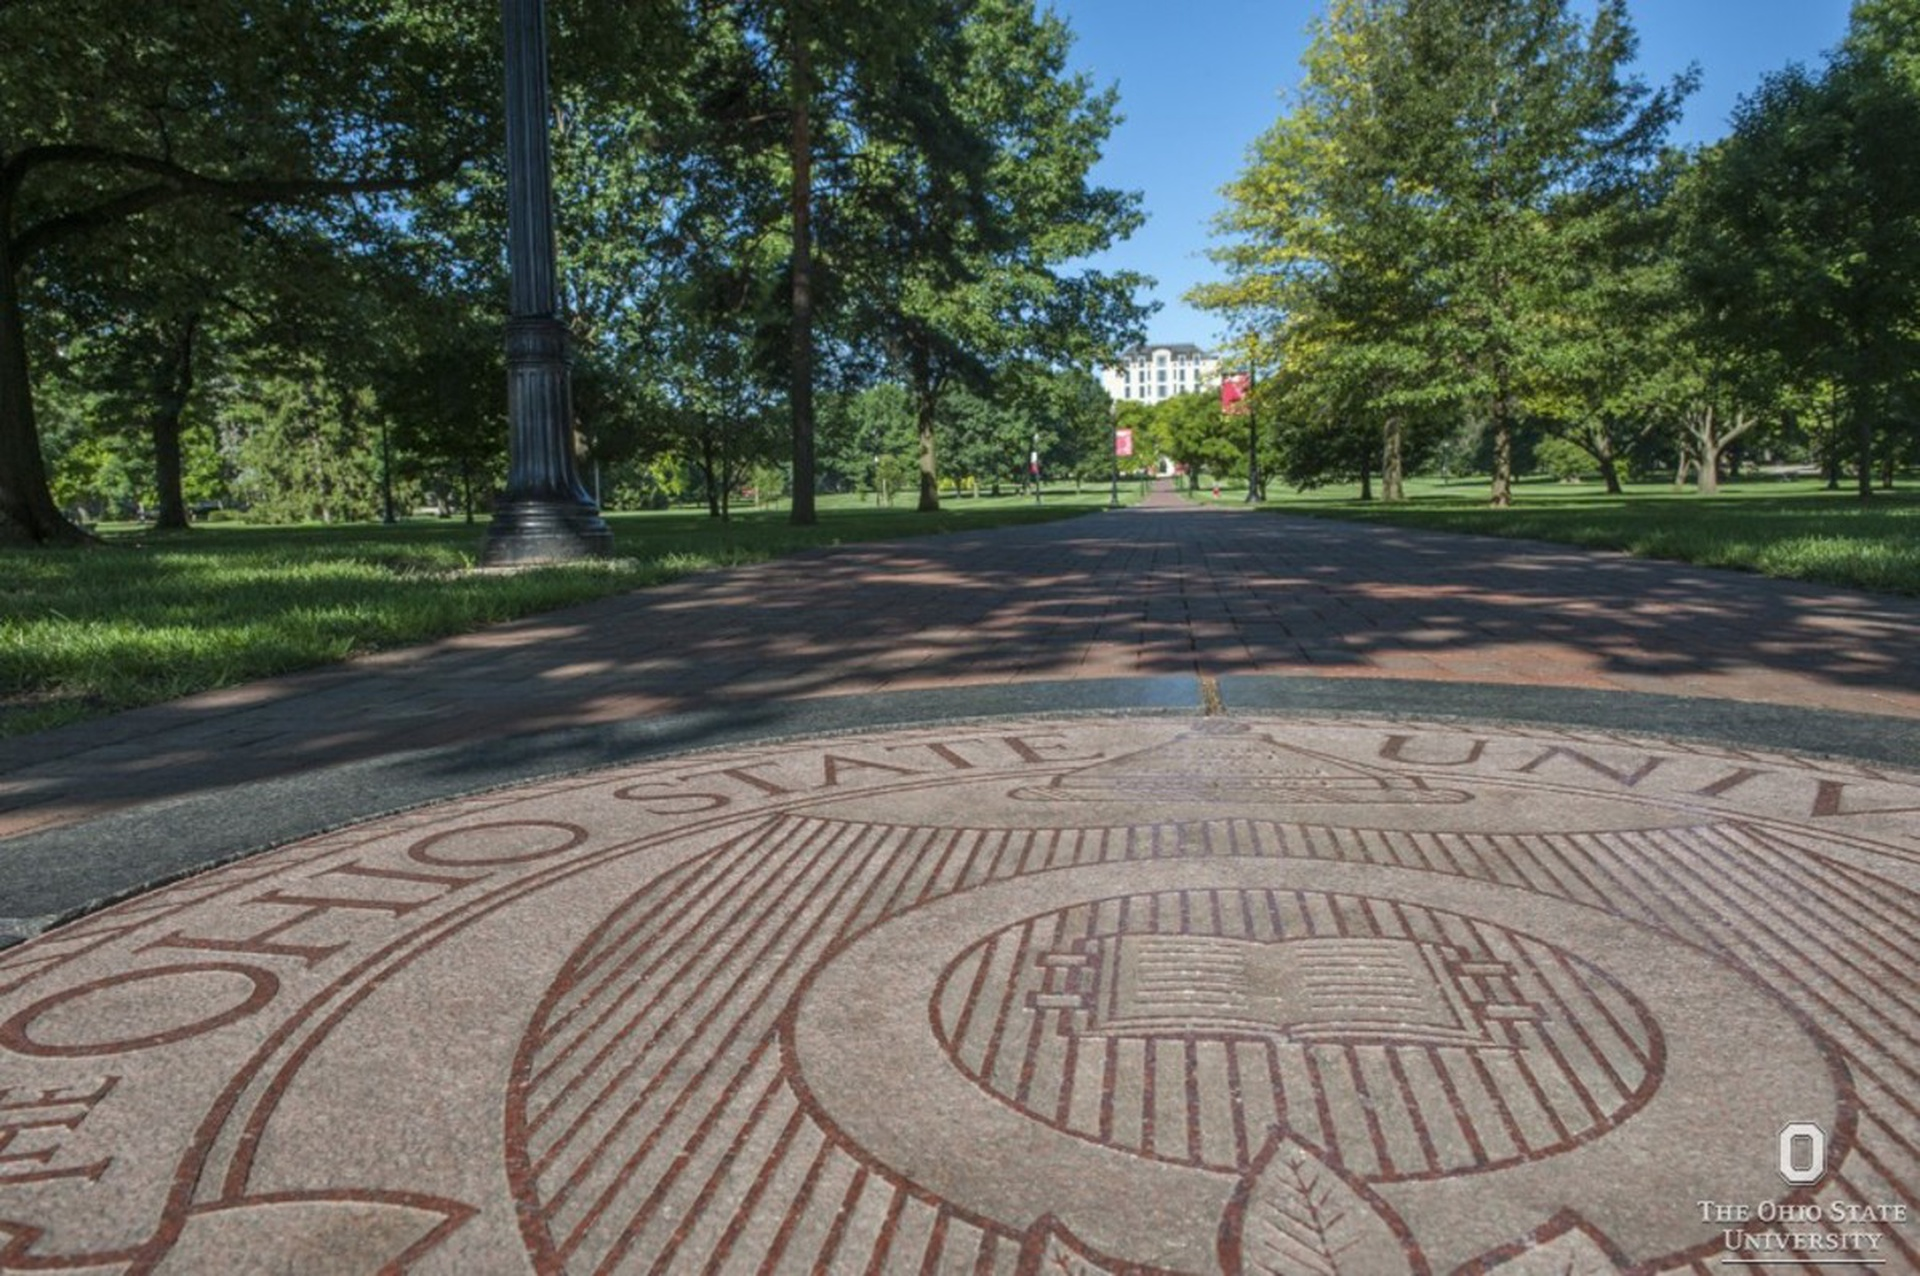 The seal of The Ohio State University on the Oval